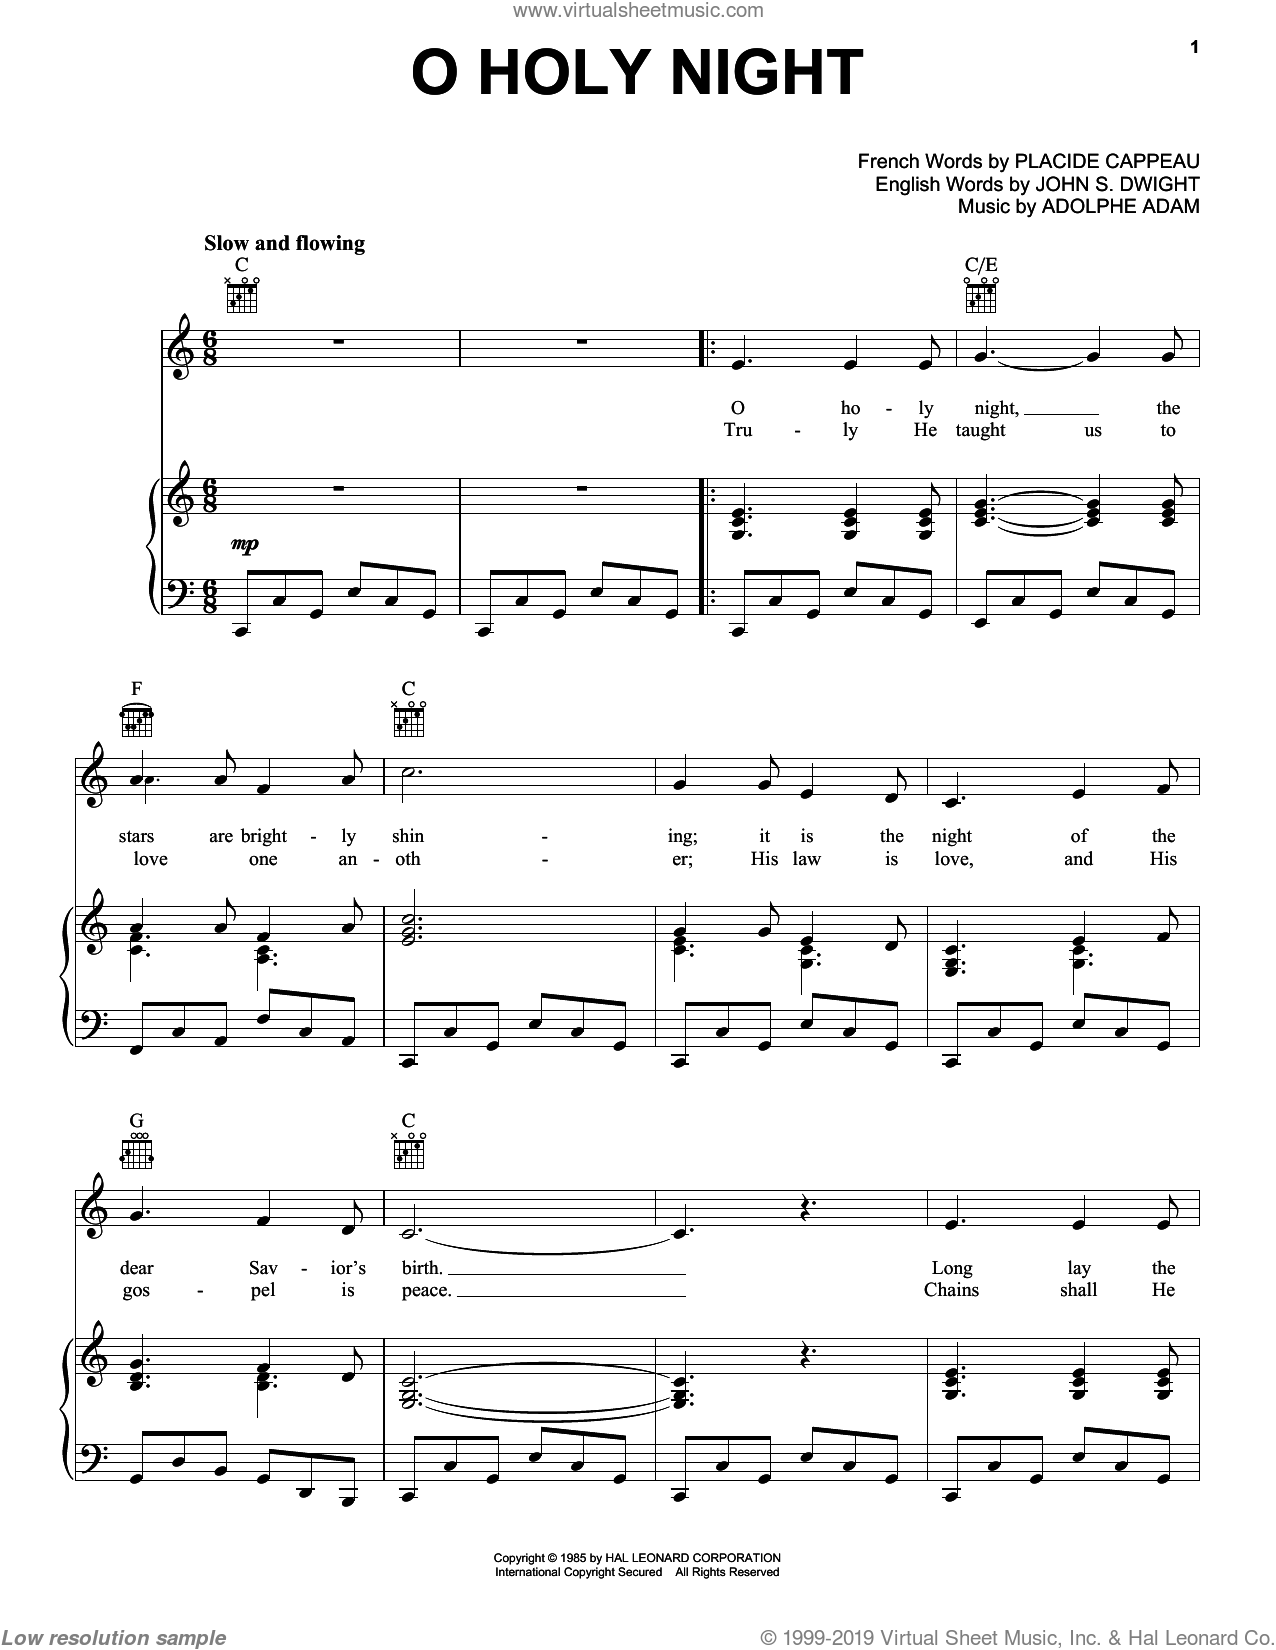 Harmonica u00bb Harmonica Tabs Oh Holy Night - Music Sheets, Tablature, Chords and Lyrics